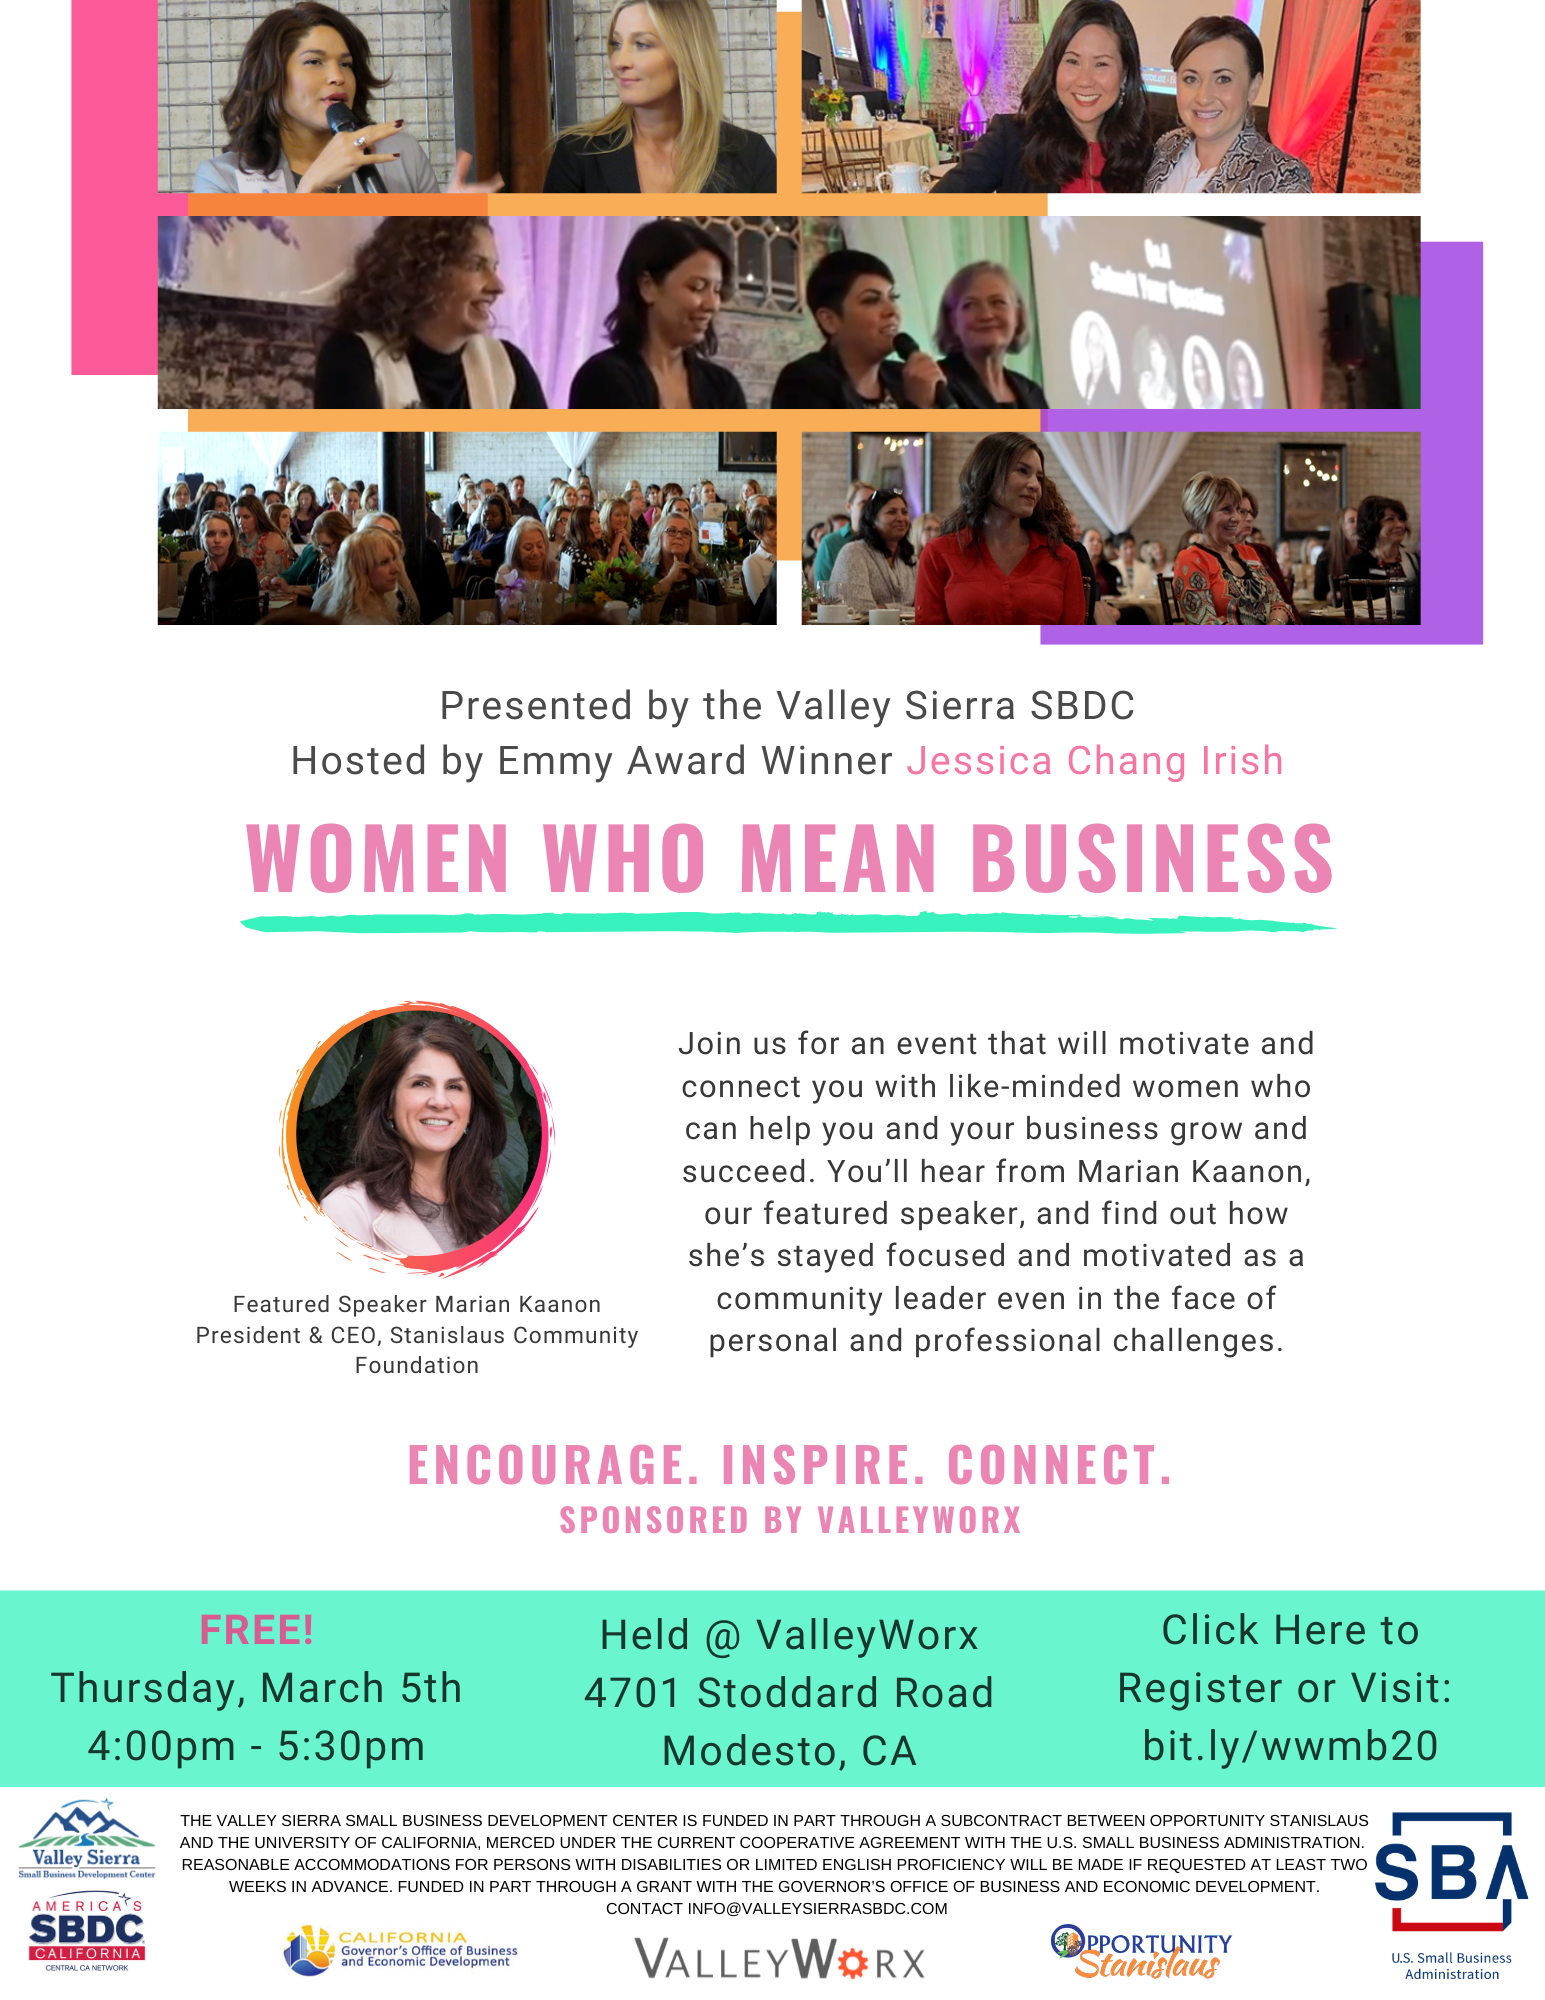 Event Flyer, Women Who Mean Business. 3/5/2020, 4:00pm-5:30pm. FREE. At ValleyWorx 4701 Stoddard Road, 2nd floor lobby, Modesto, Ca.